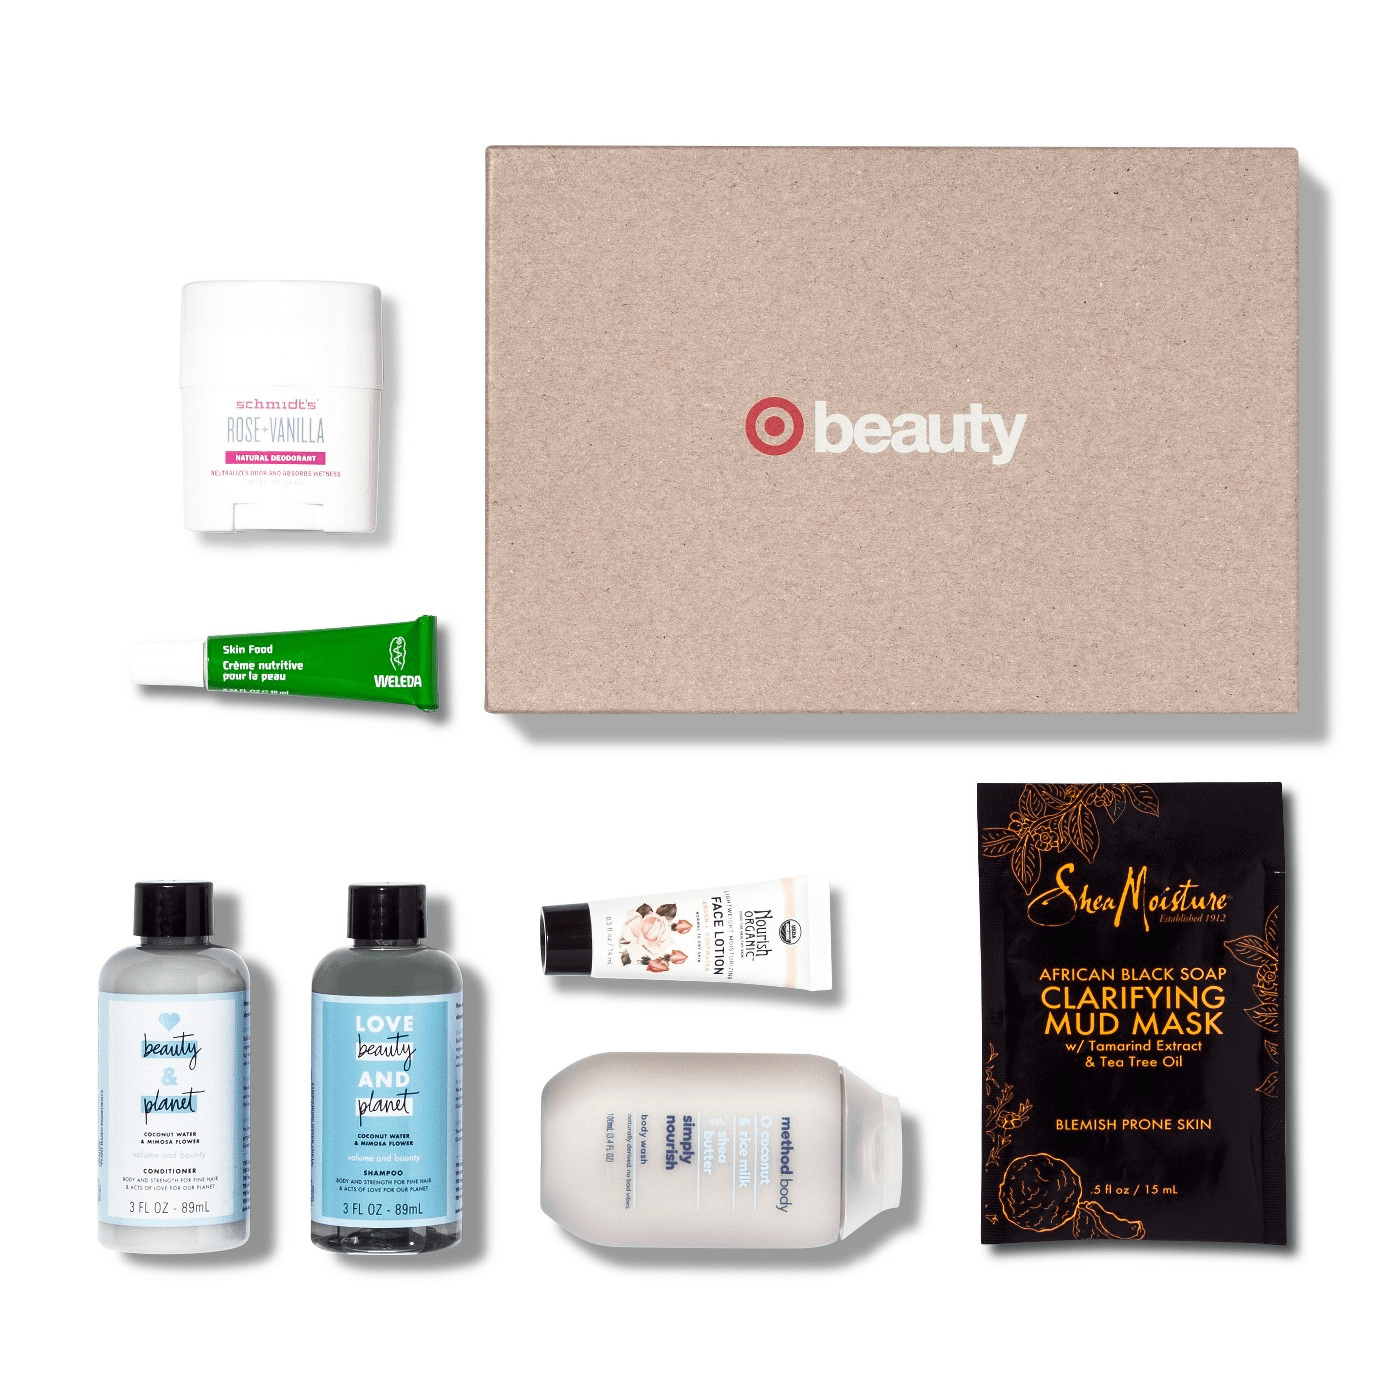 April 2018 Target Beauty Box Available Now!